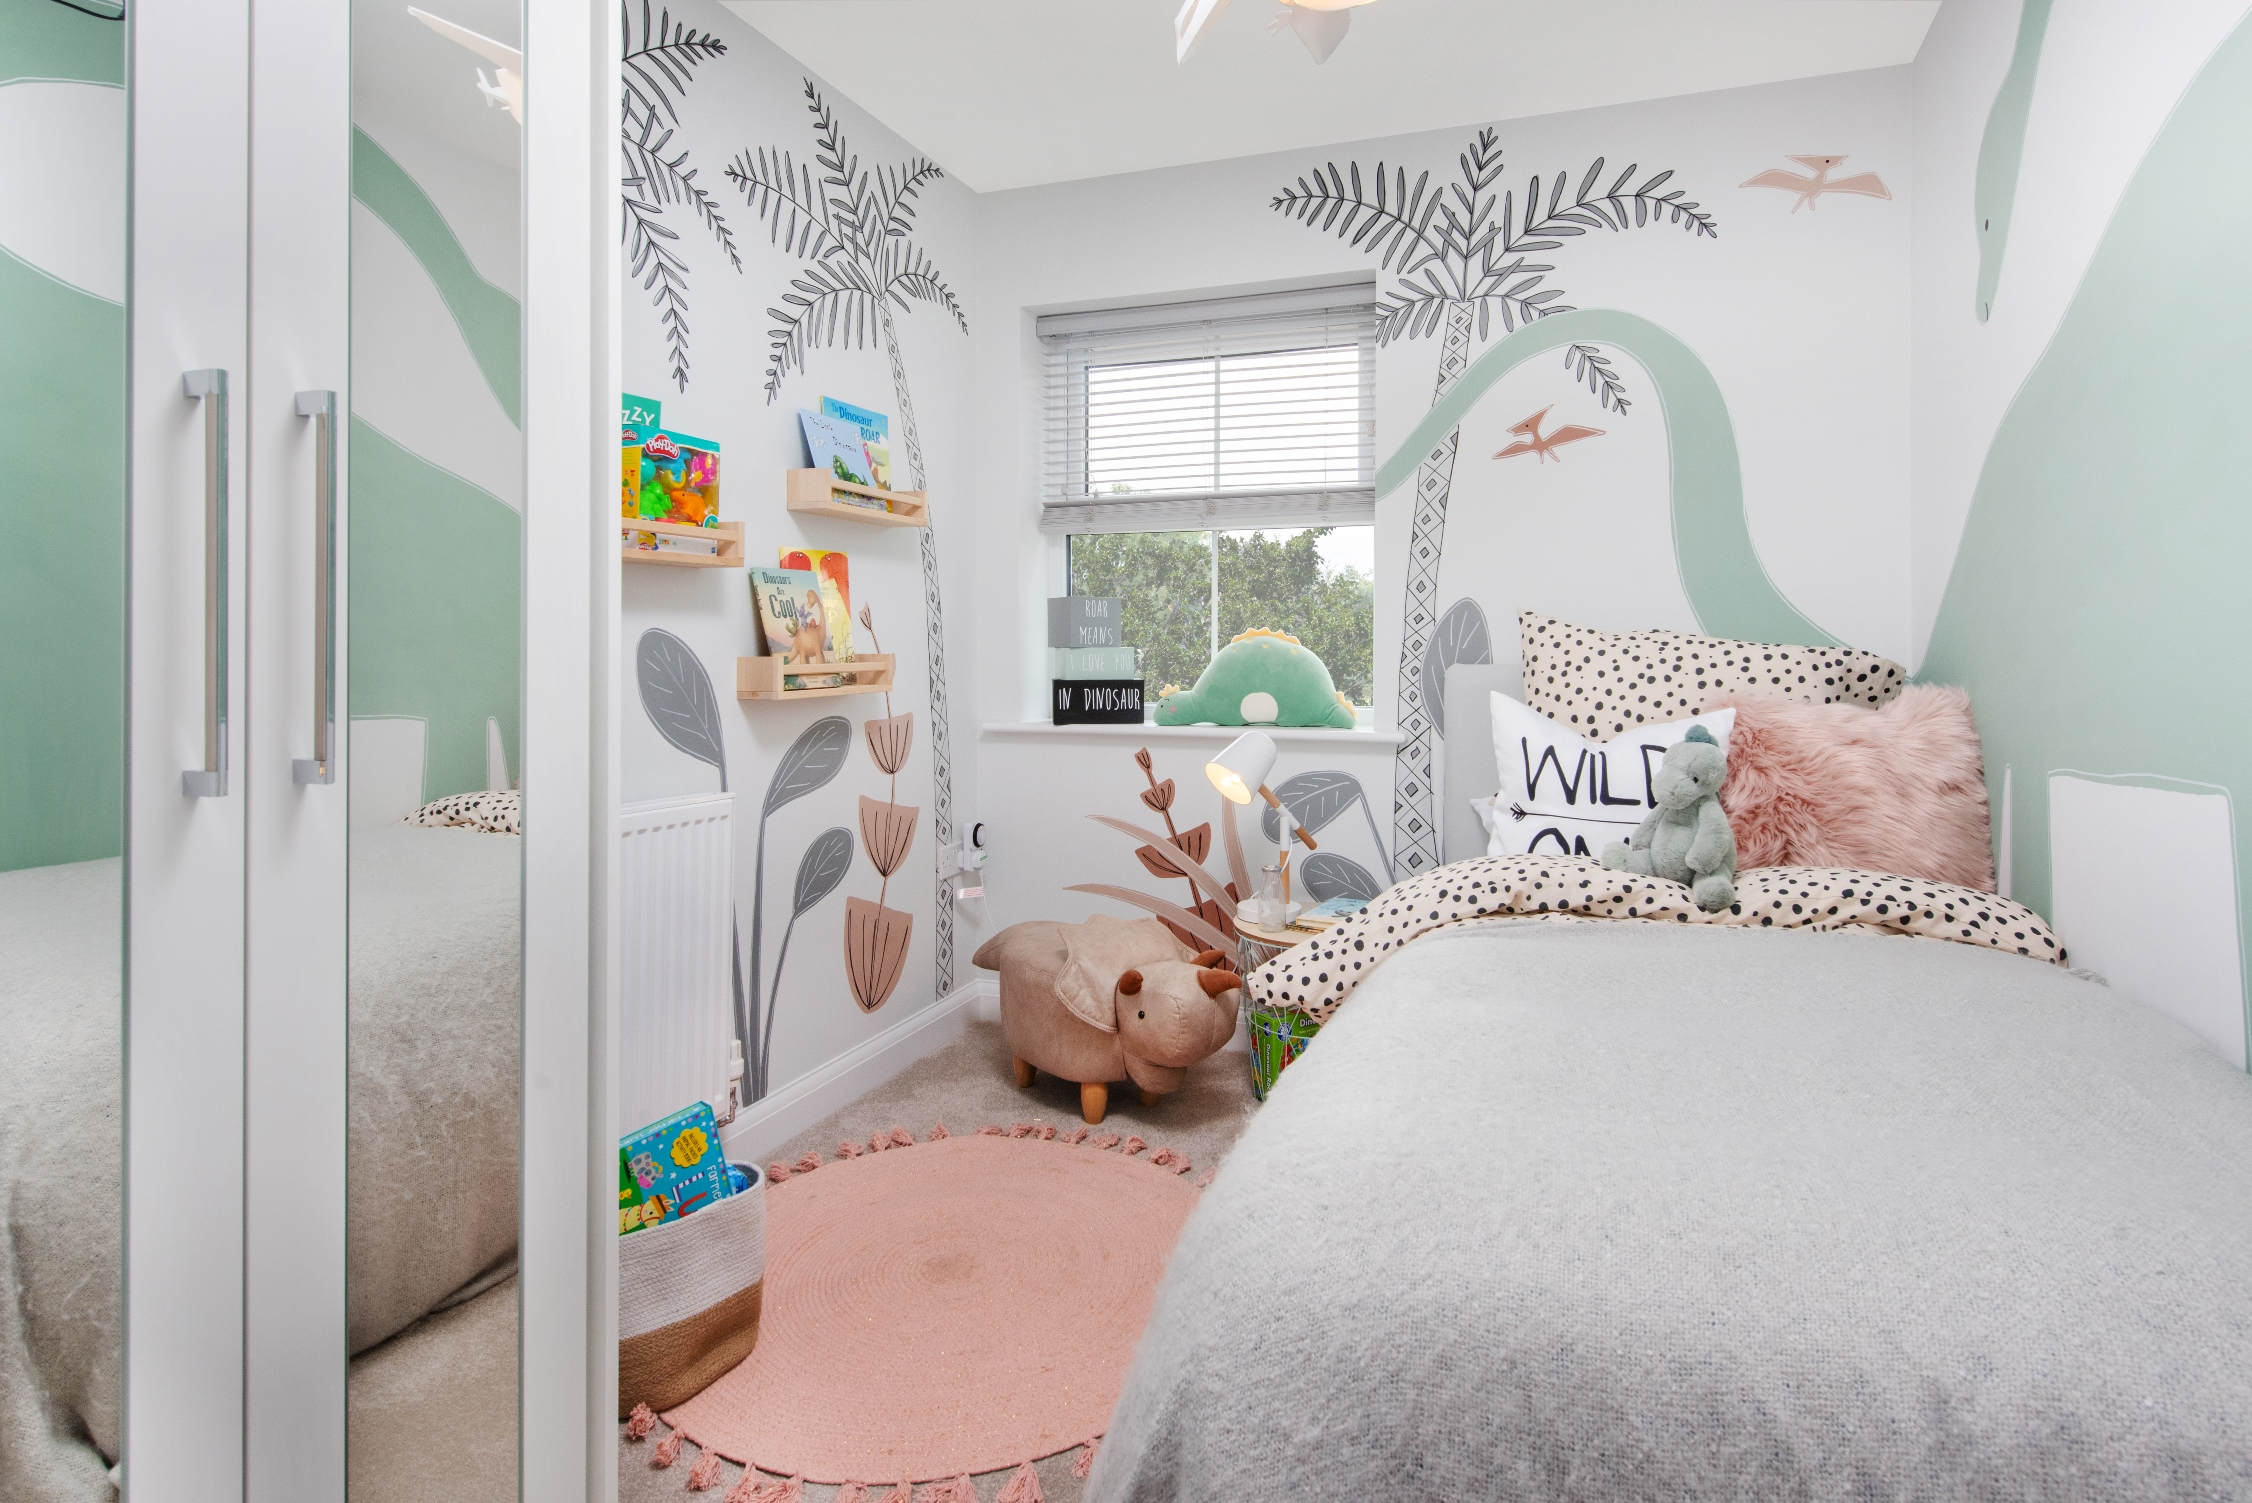 Dwem 010 Bem Fleckneyfields Hadley 3bed The Dinosaur Themed Bedroom In The Hadley Style Show Home At Fleckney Fields Business Shows Group